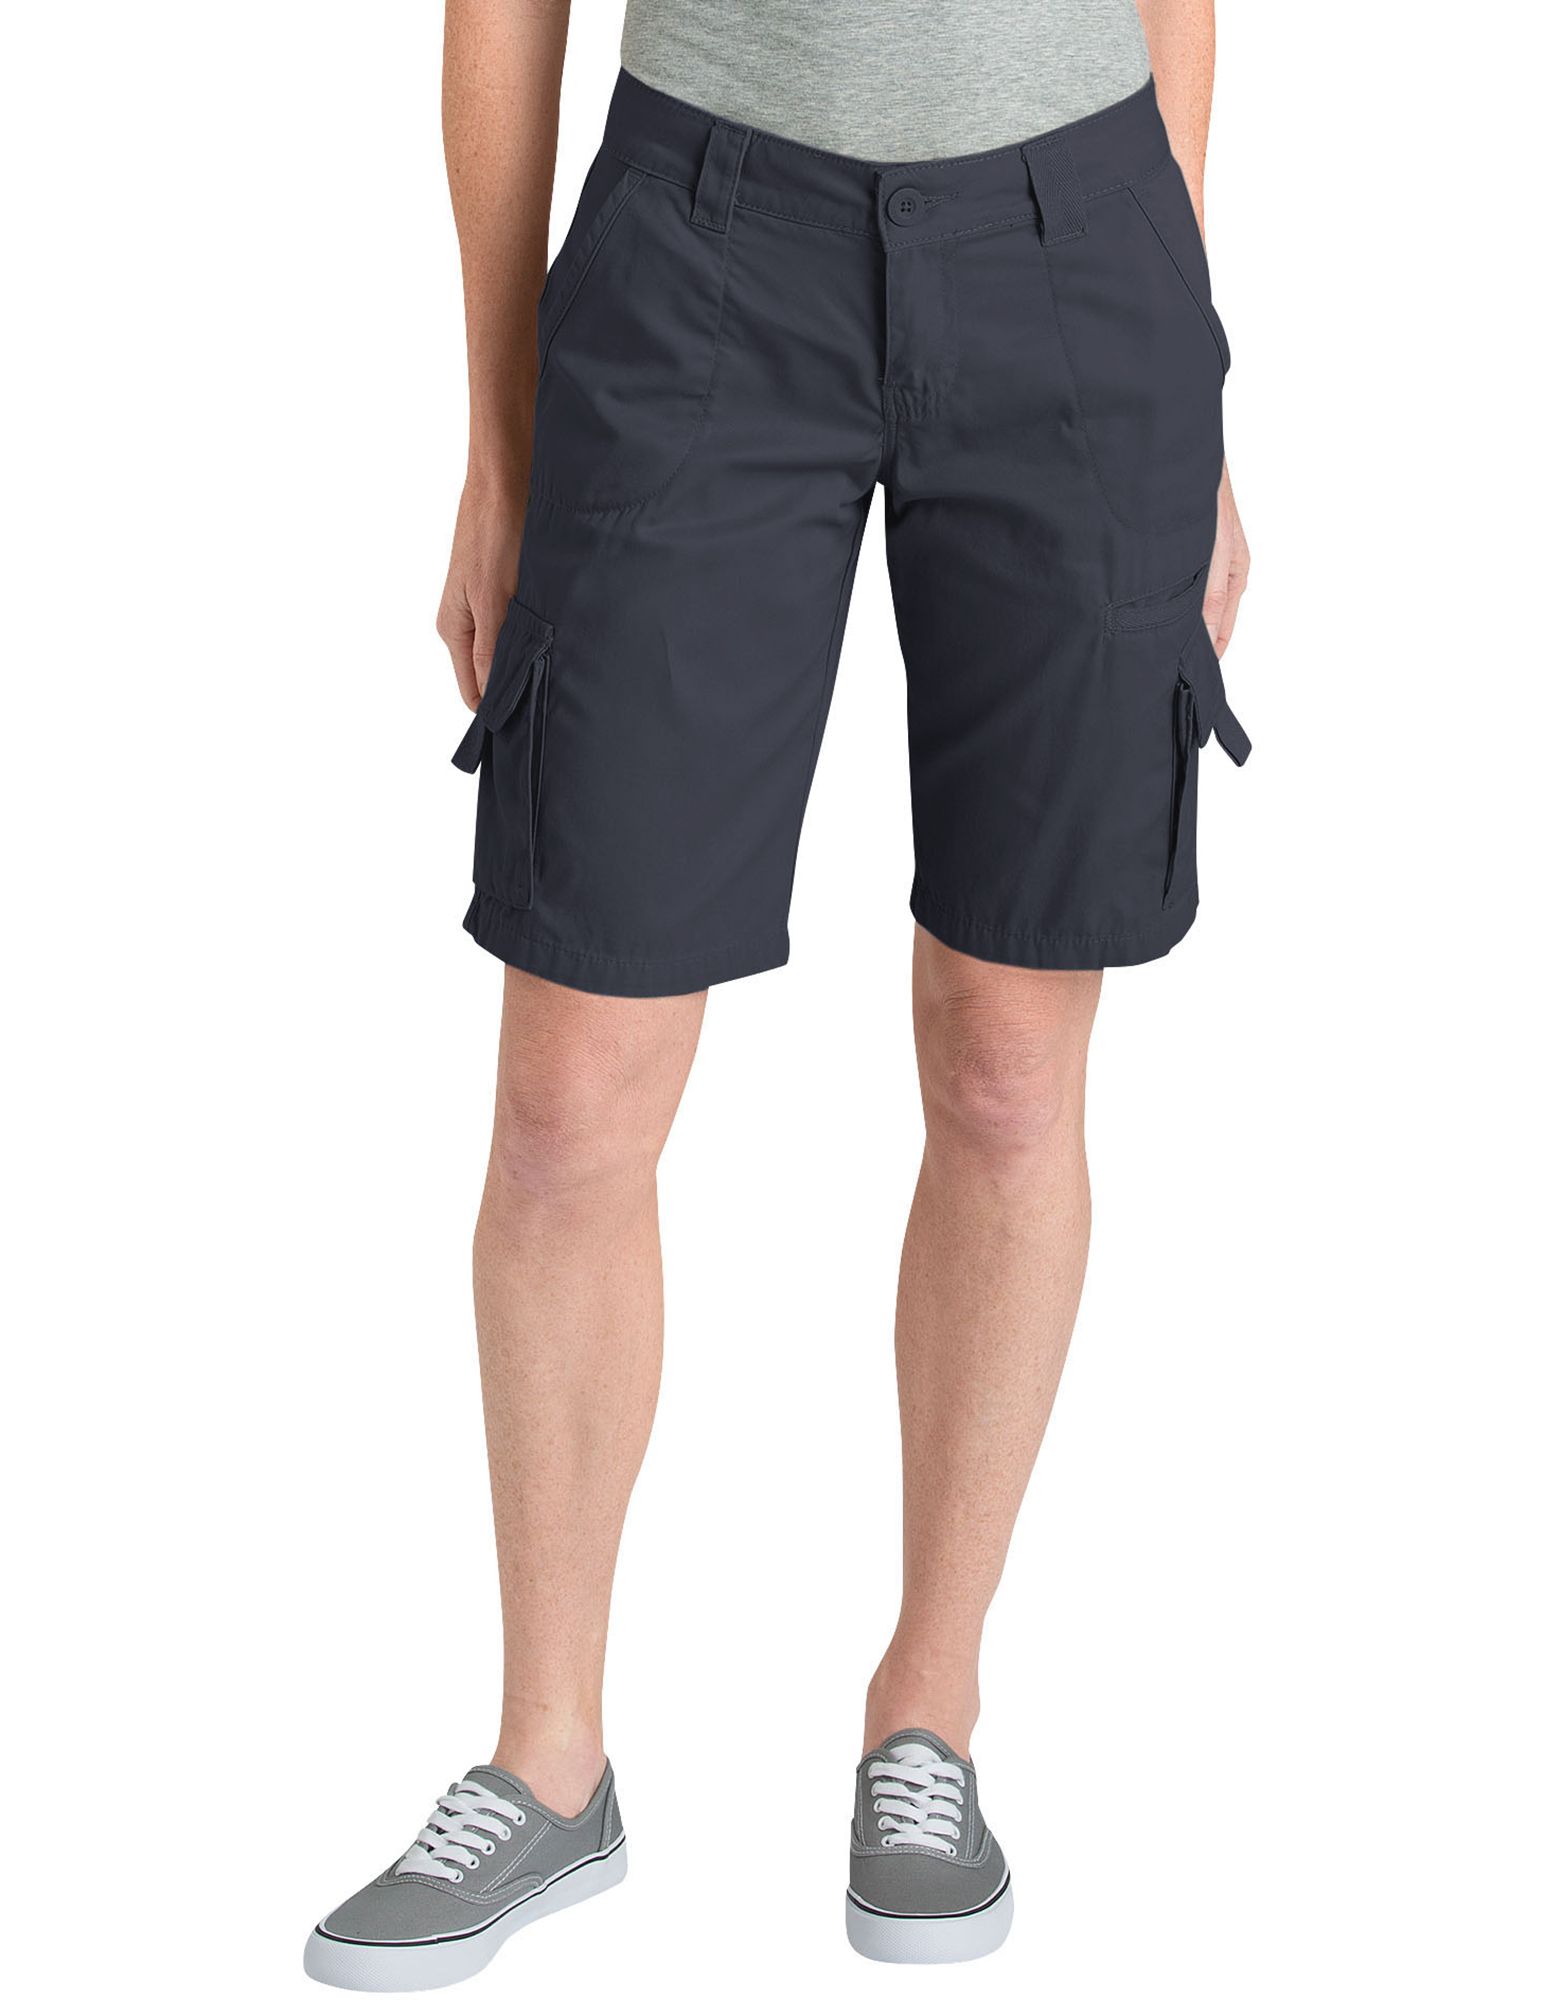 "Women's 11"" Relaxed Fit Cotton Cargo Shorts - Diesel Gray (RYG)"